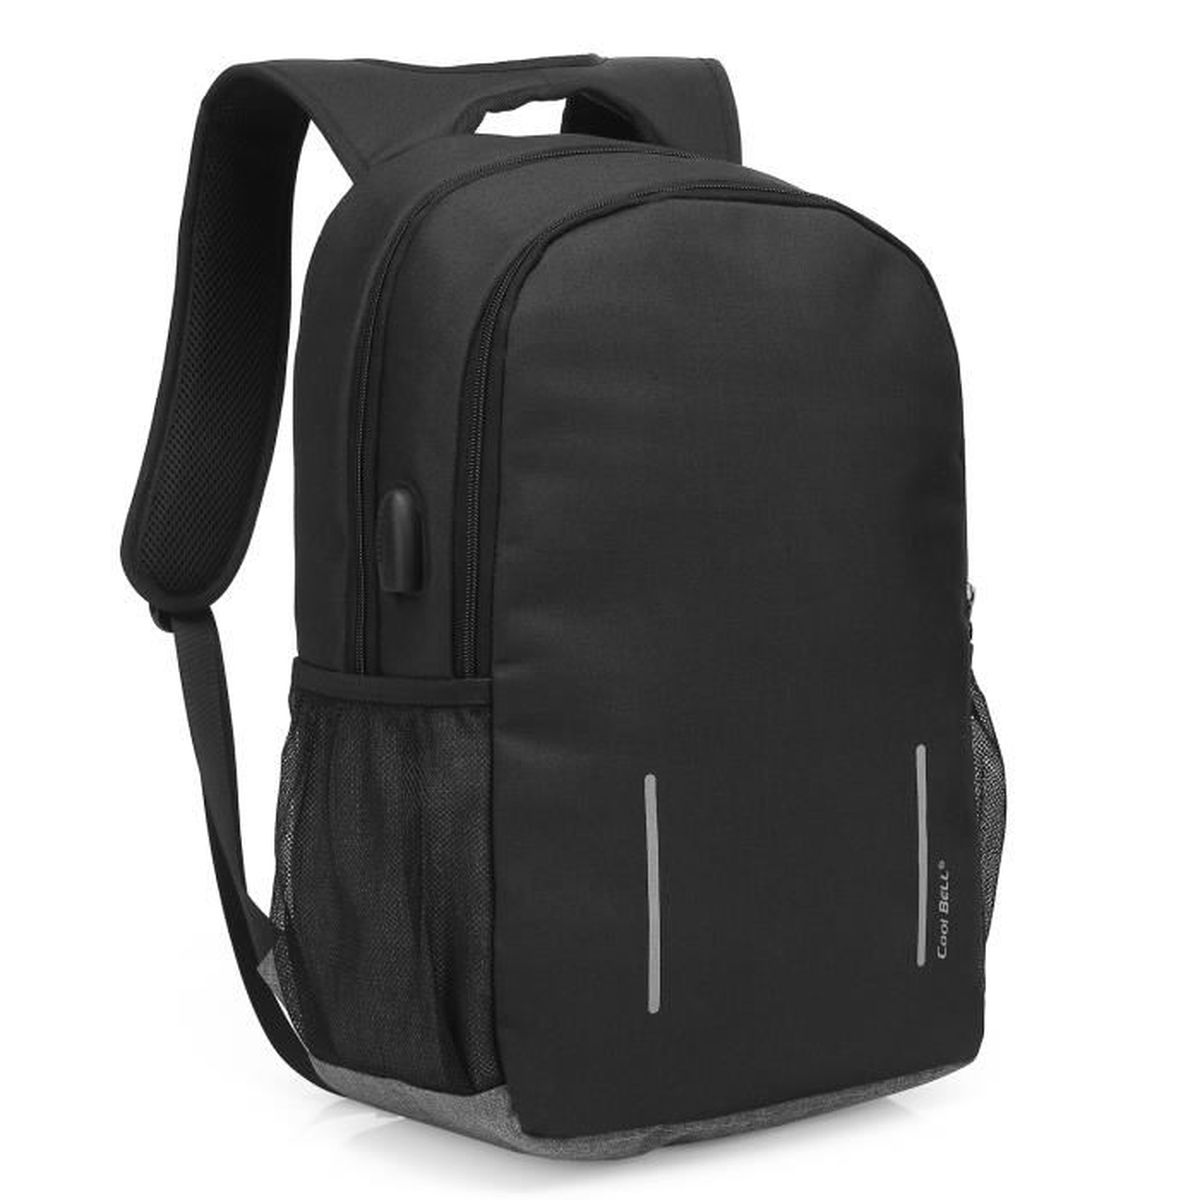 SAC À DOS INFORMATIQUE CoolBELL Multi-compartment Rucksack 17.3 Inch  Bac